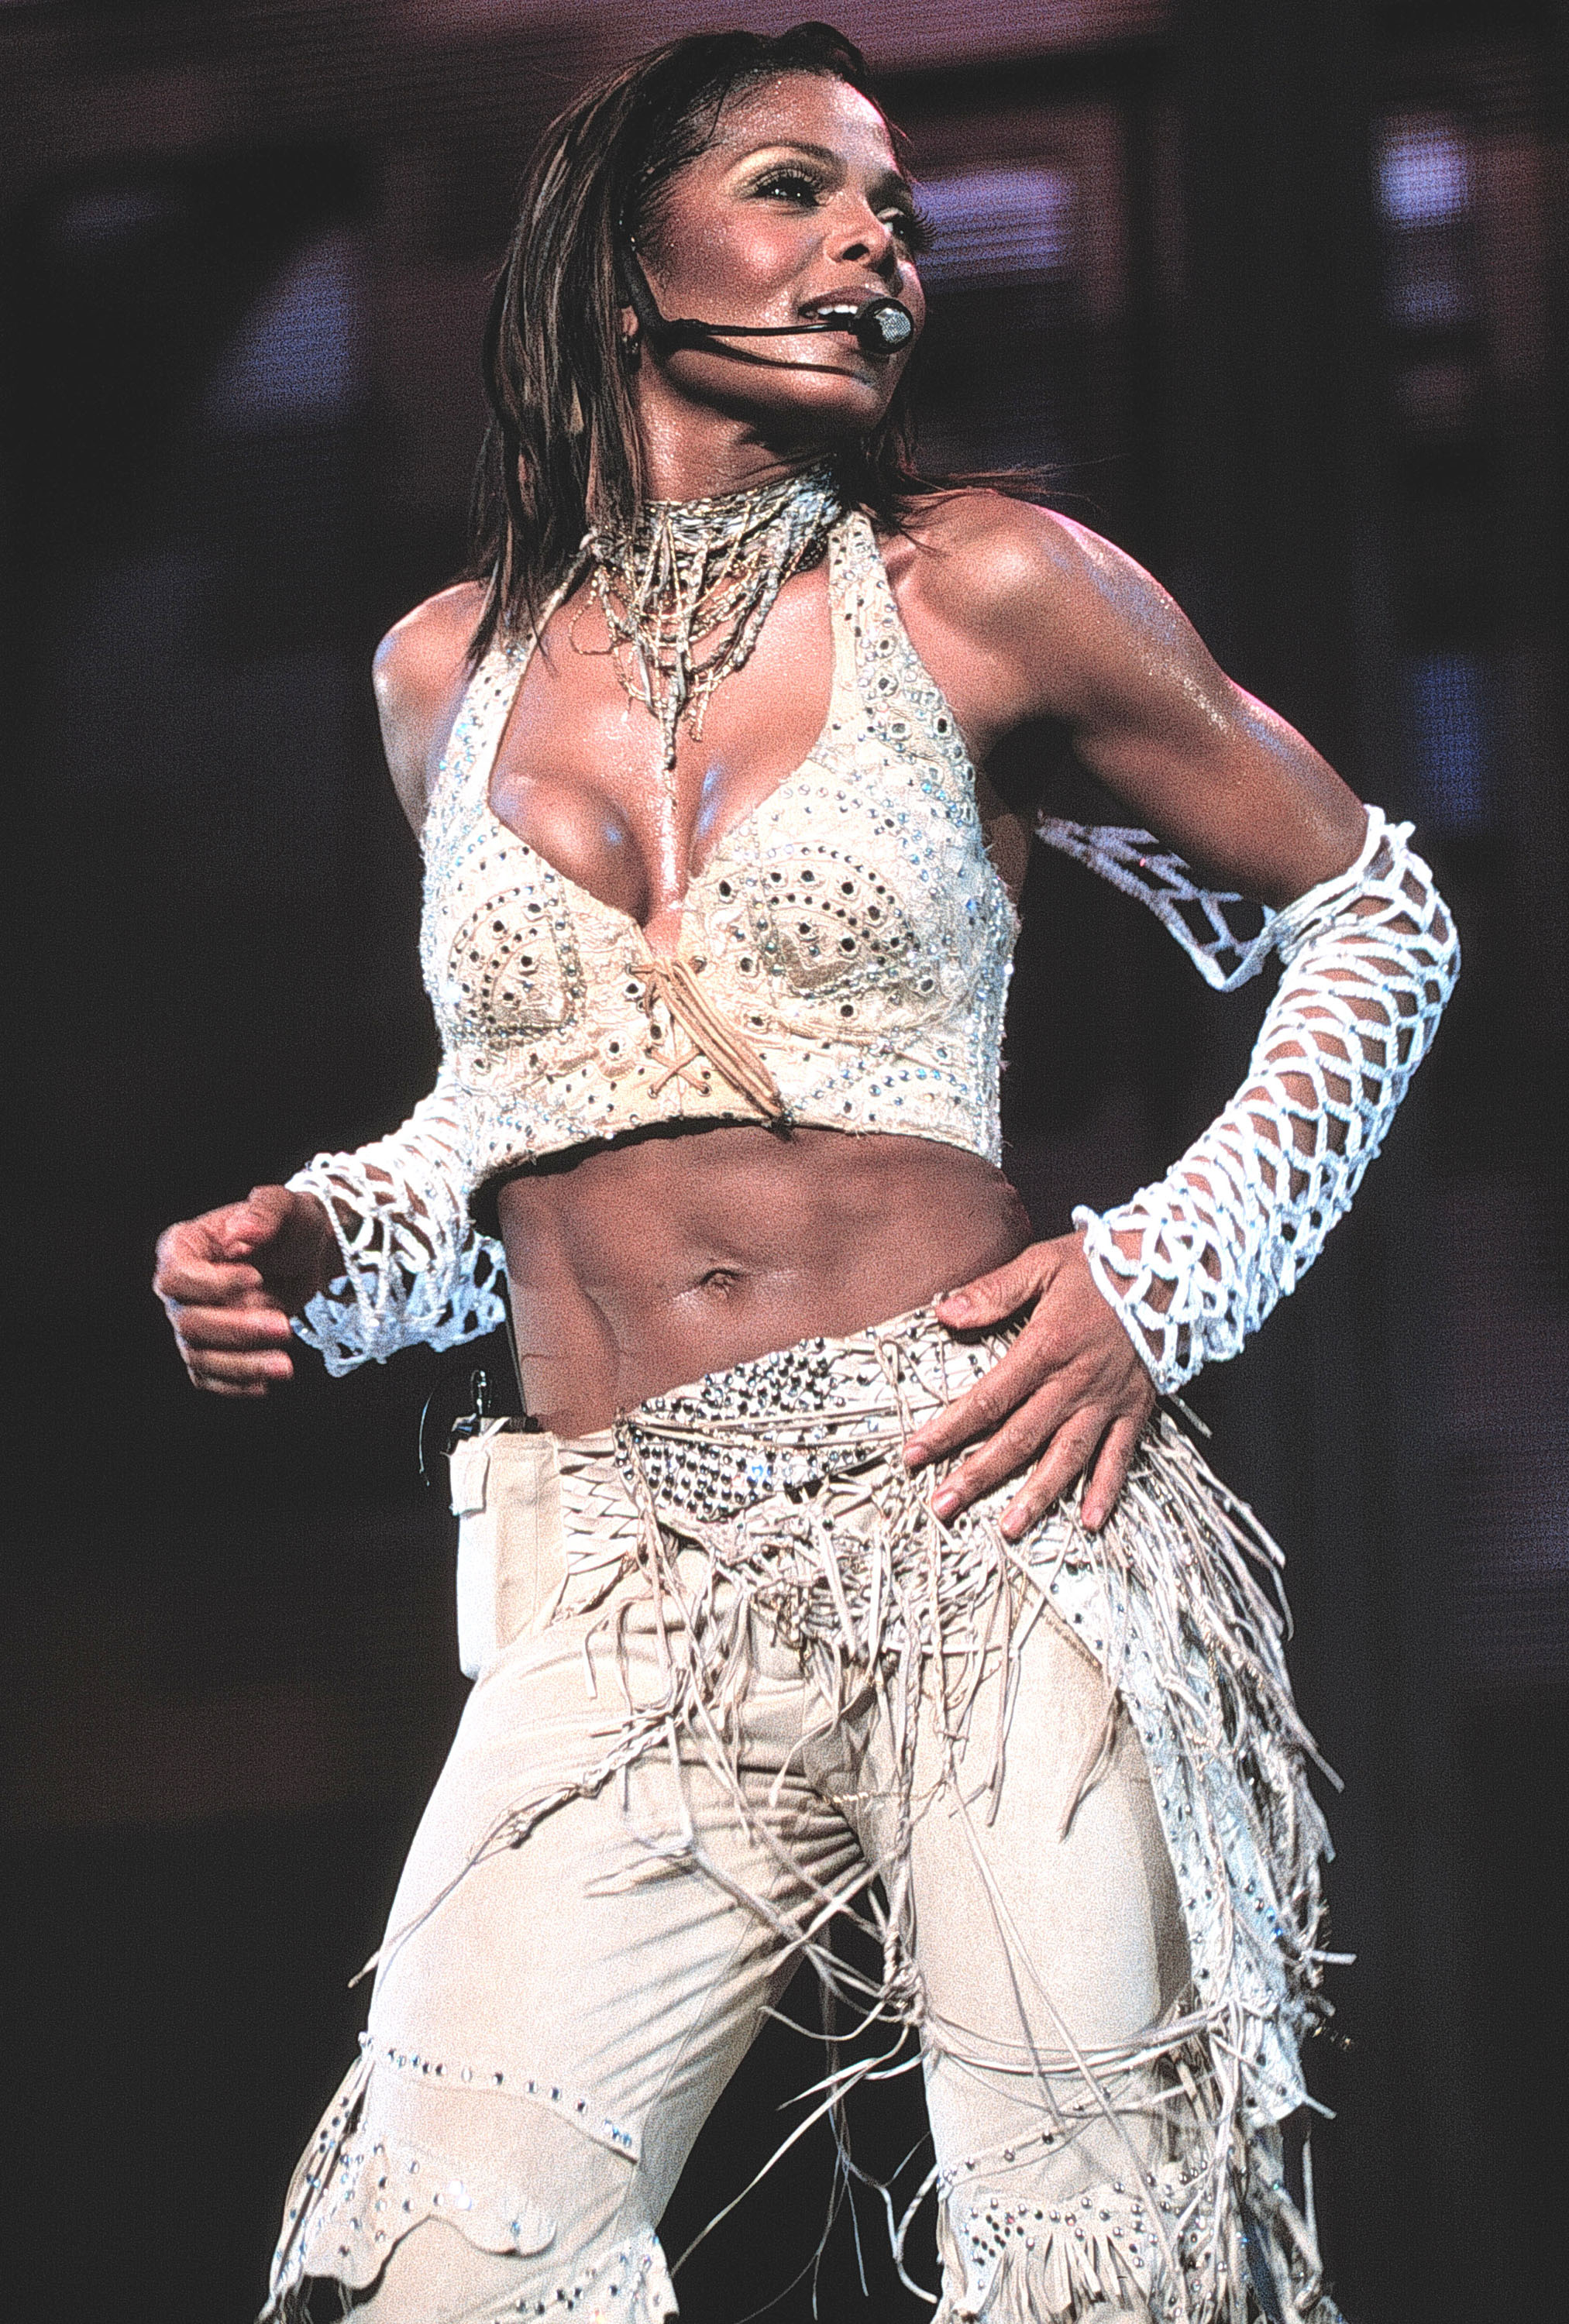 janet jackson singing onstage at madison square garden in a fringed two piece